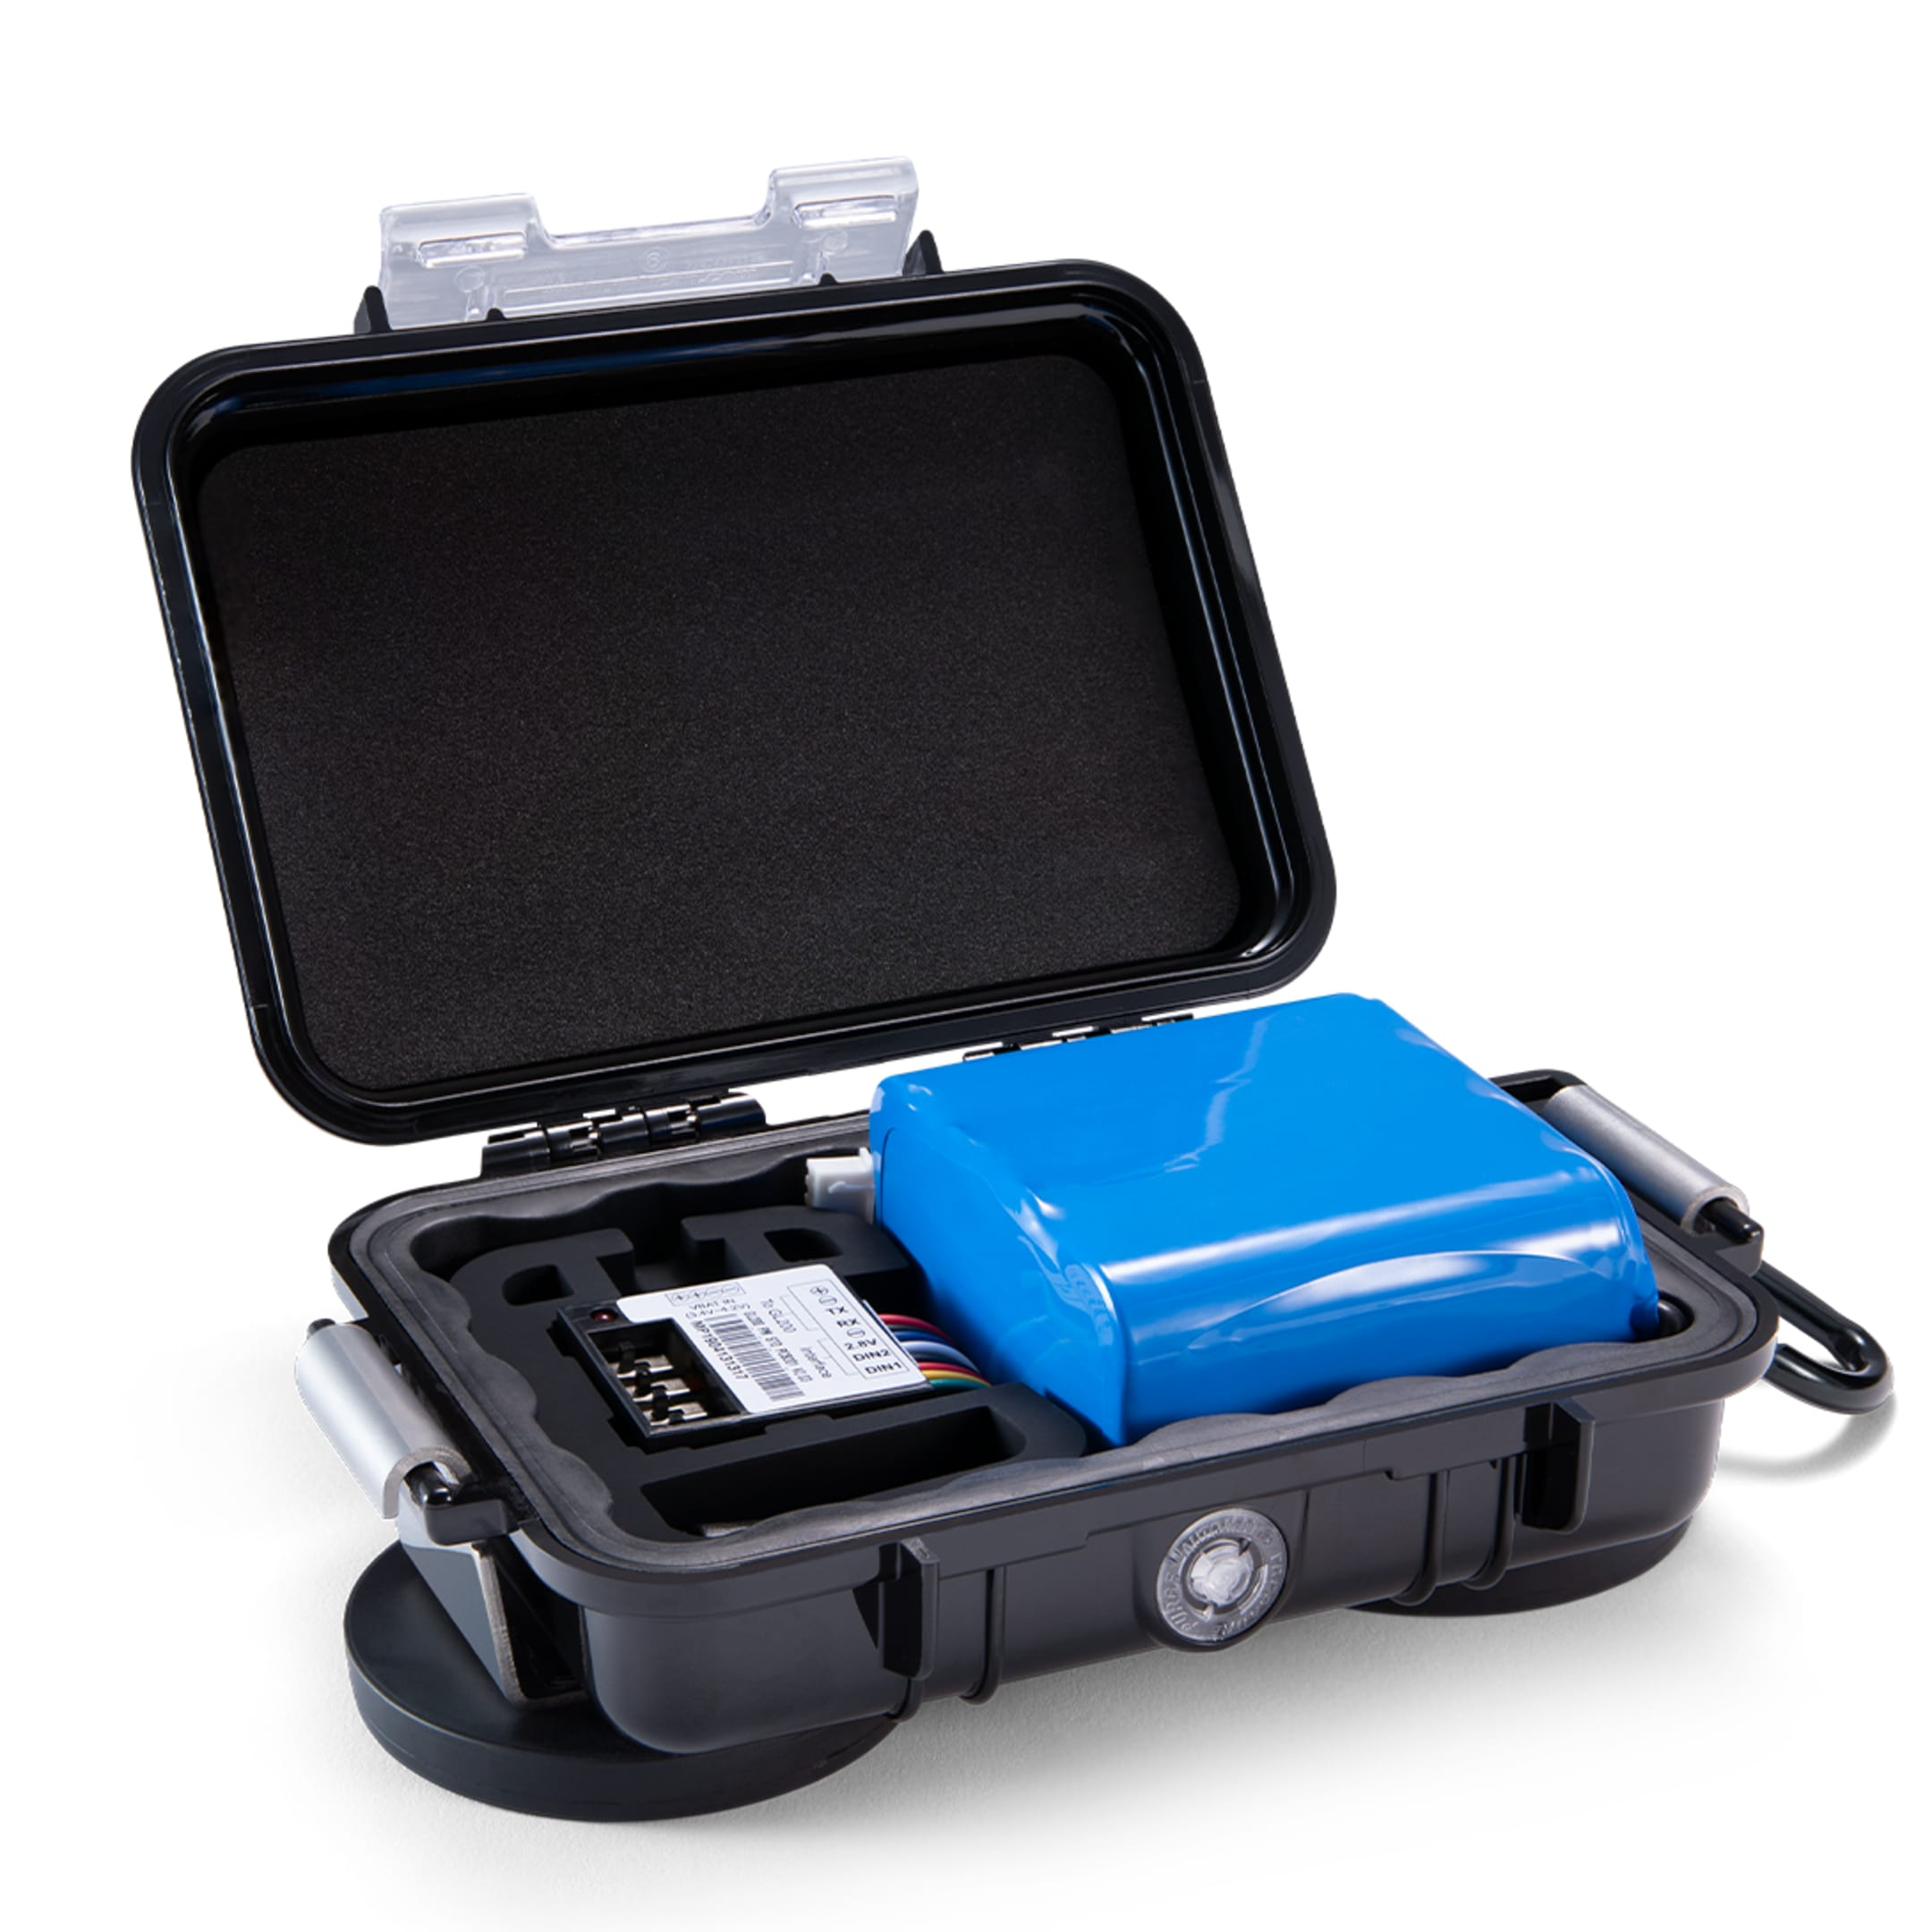 M6 Pro XL Extended Battery Case for GL300 GPS Series Trackers